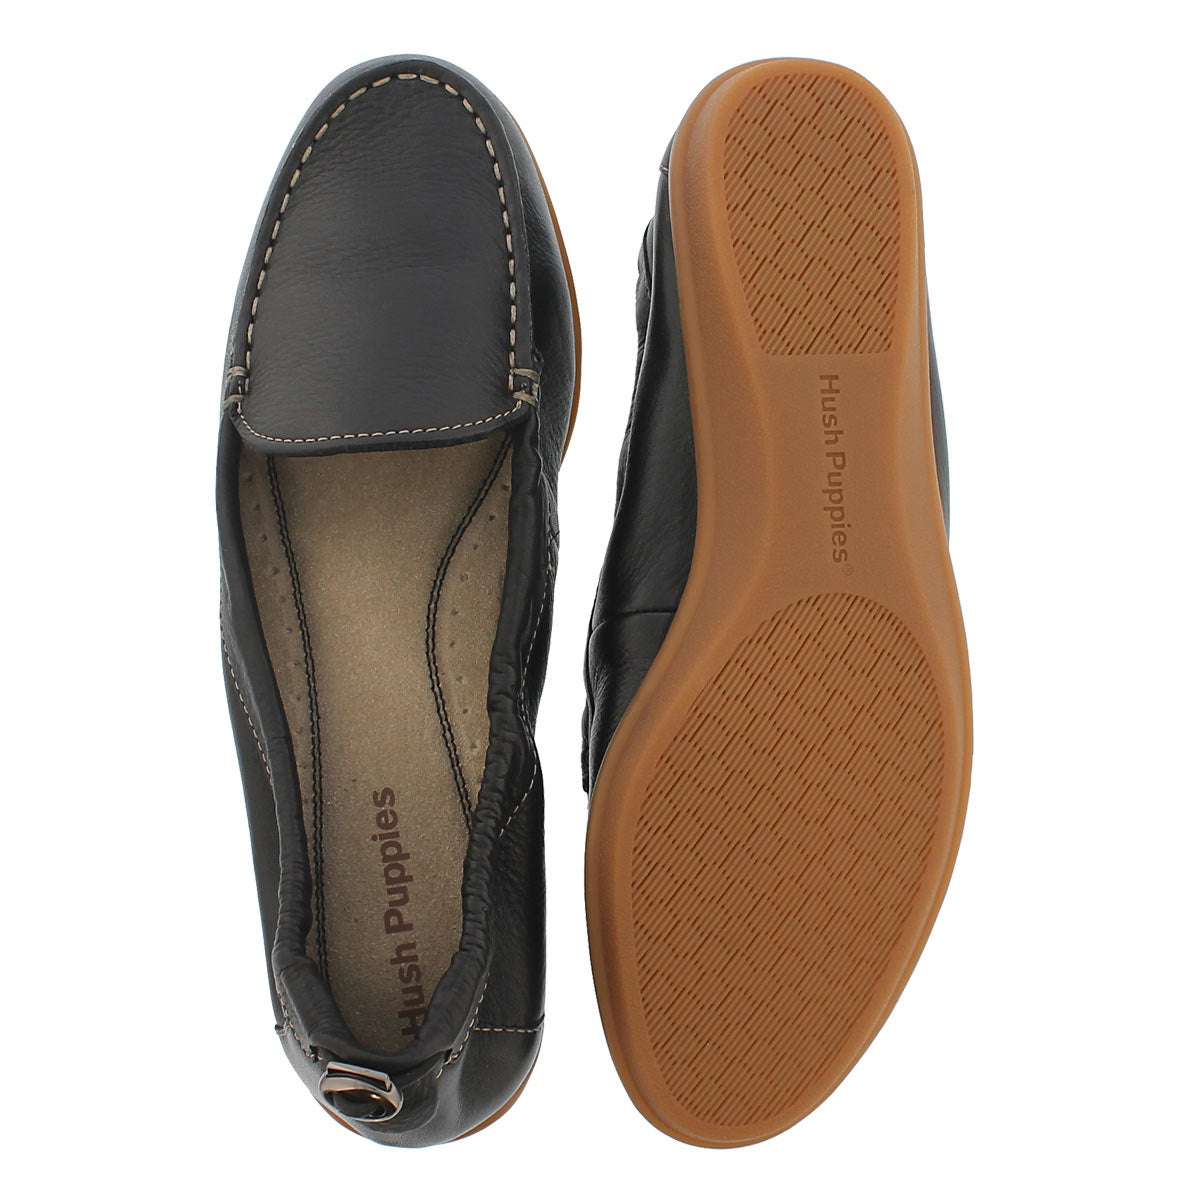 Lds Endless Wink black casual slip on